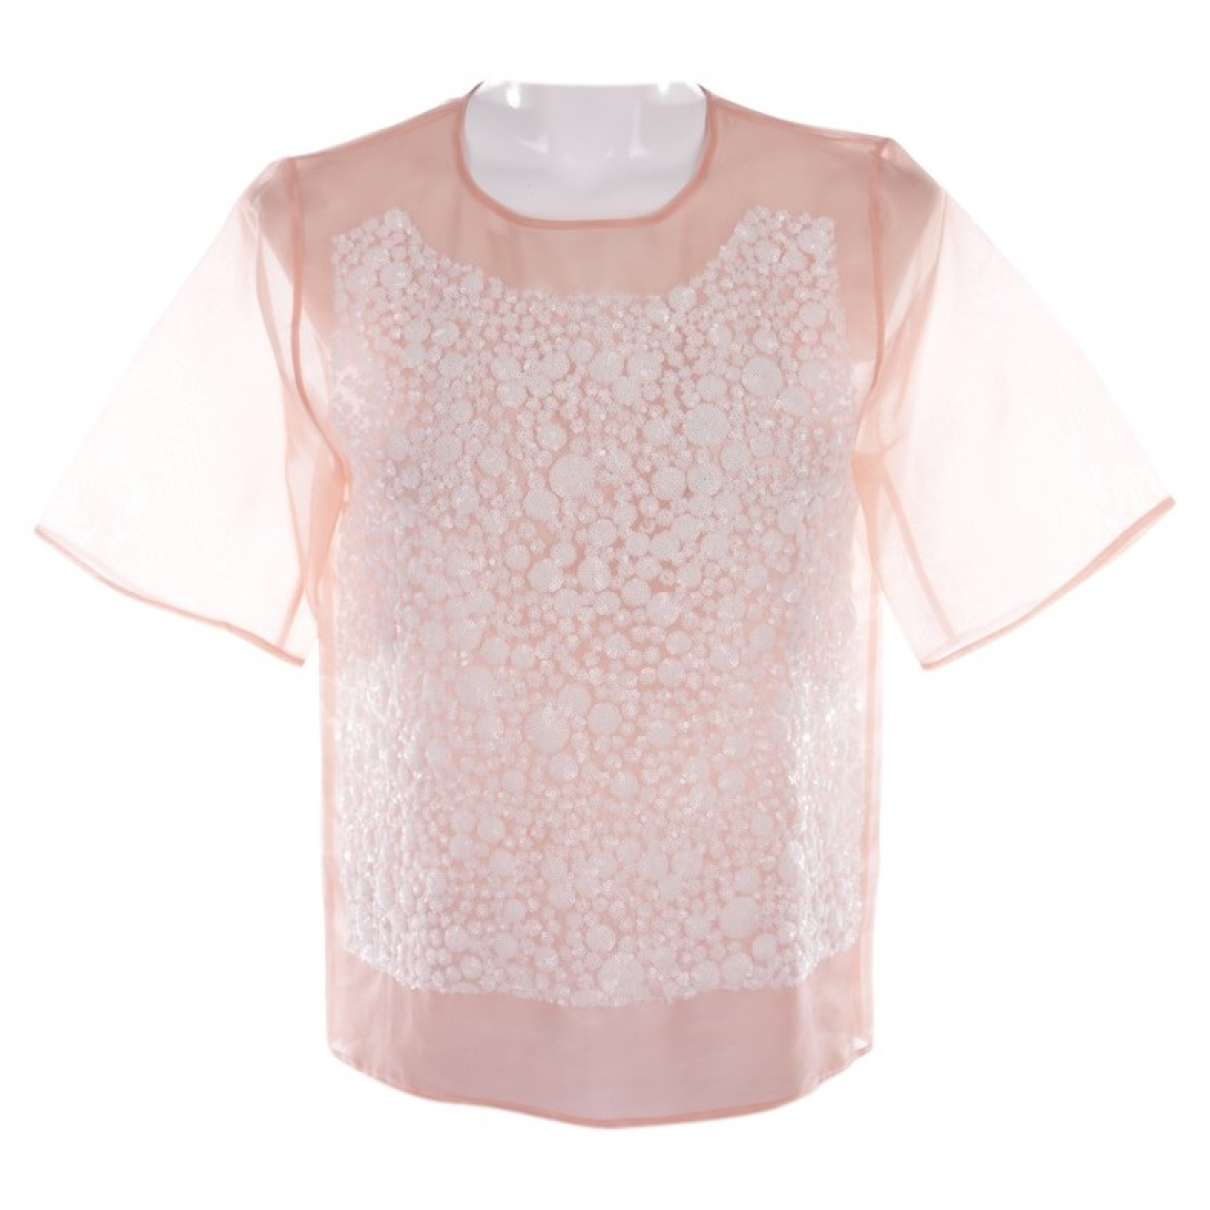 Msgm \N Pink  top for Women M International